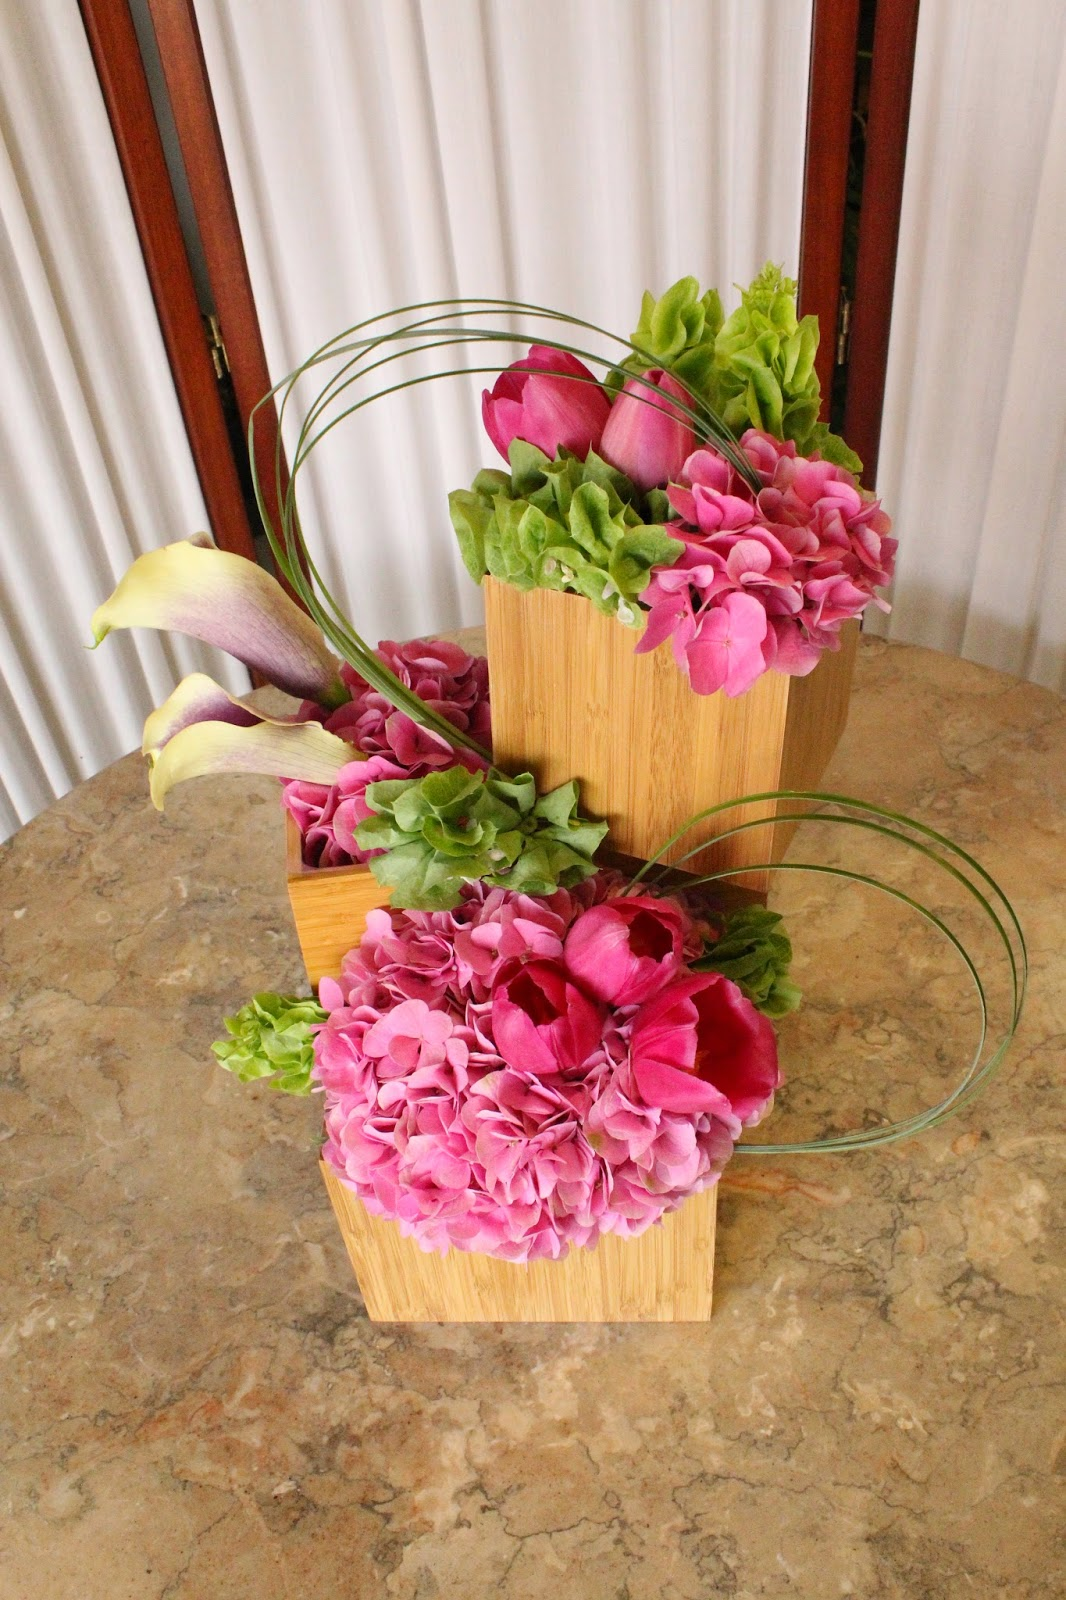 Tulips Calla Lilies Hydrangeas Pink And Green Flowers In Bamboo